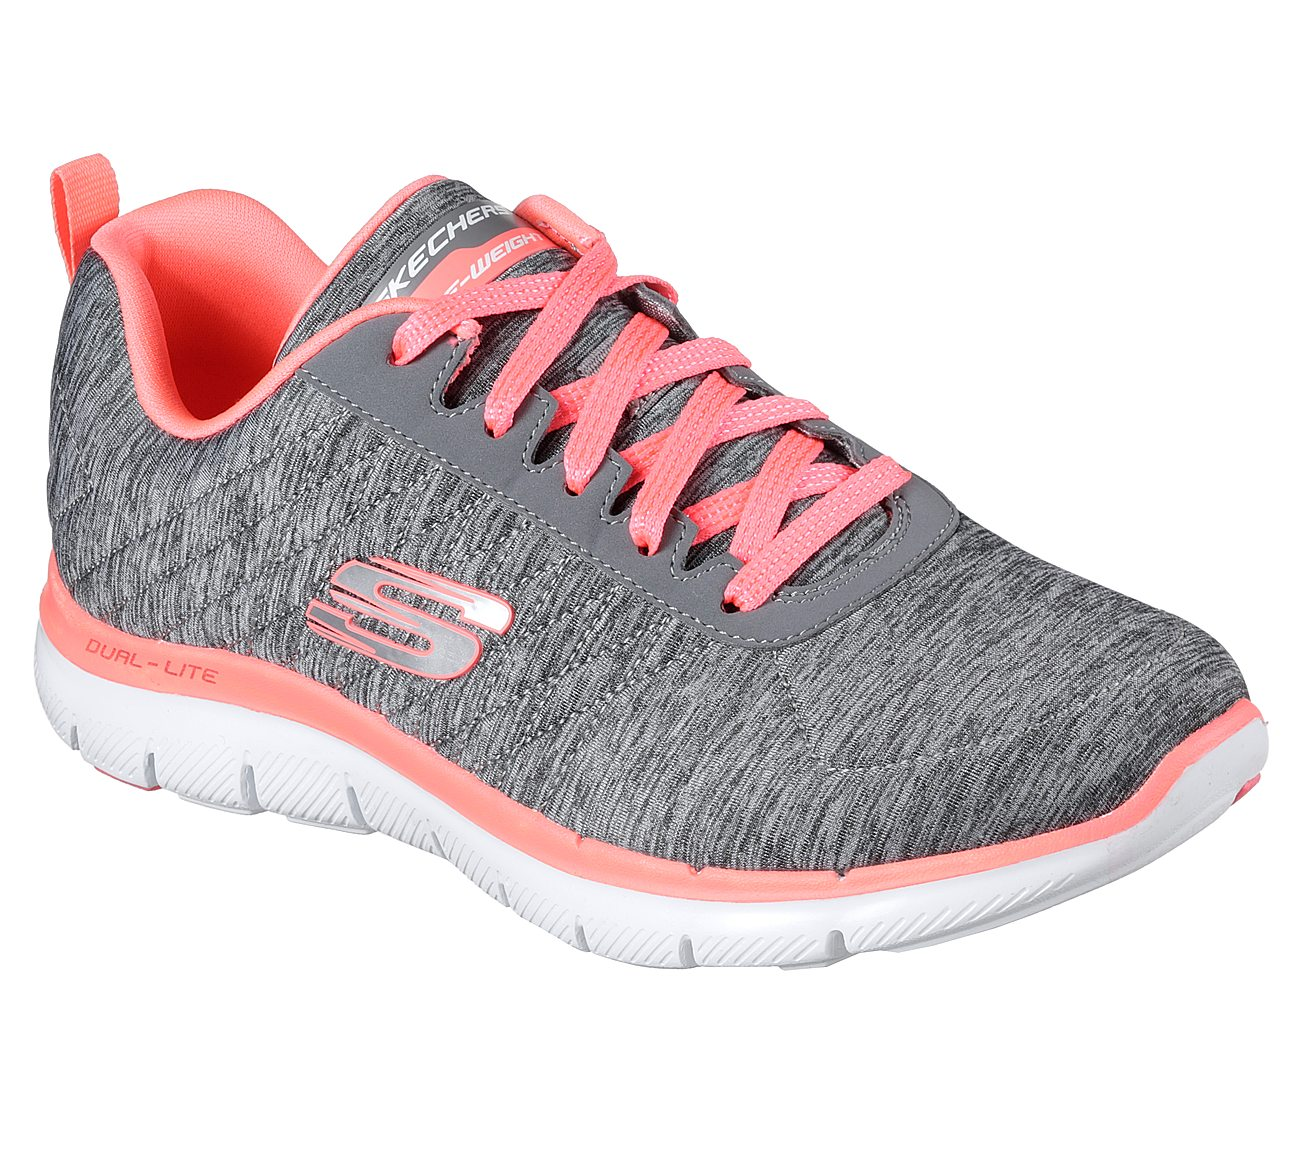 SKECHERS Flex Appeal 2.0 Flex Appeal Shoes